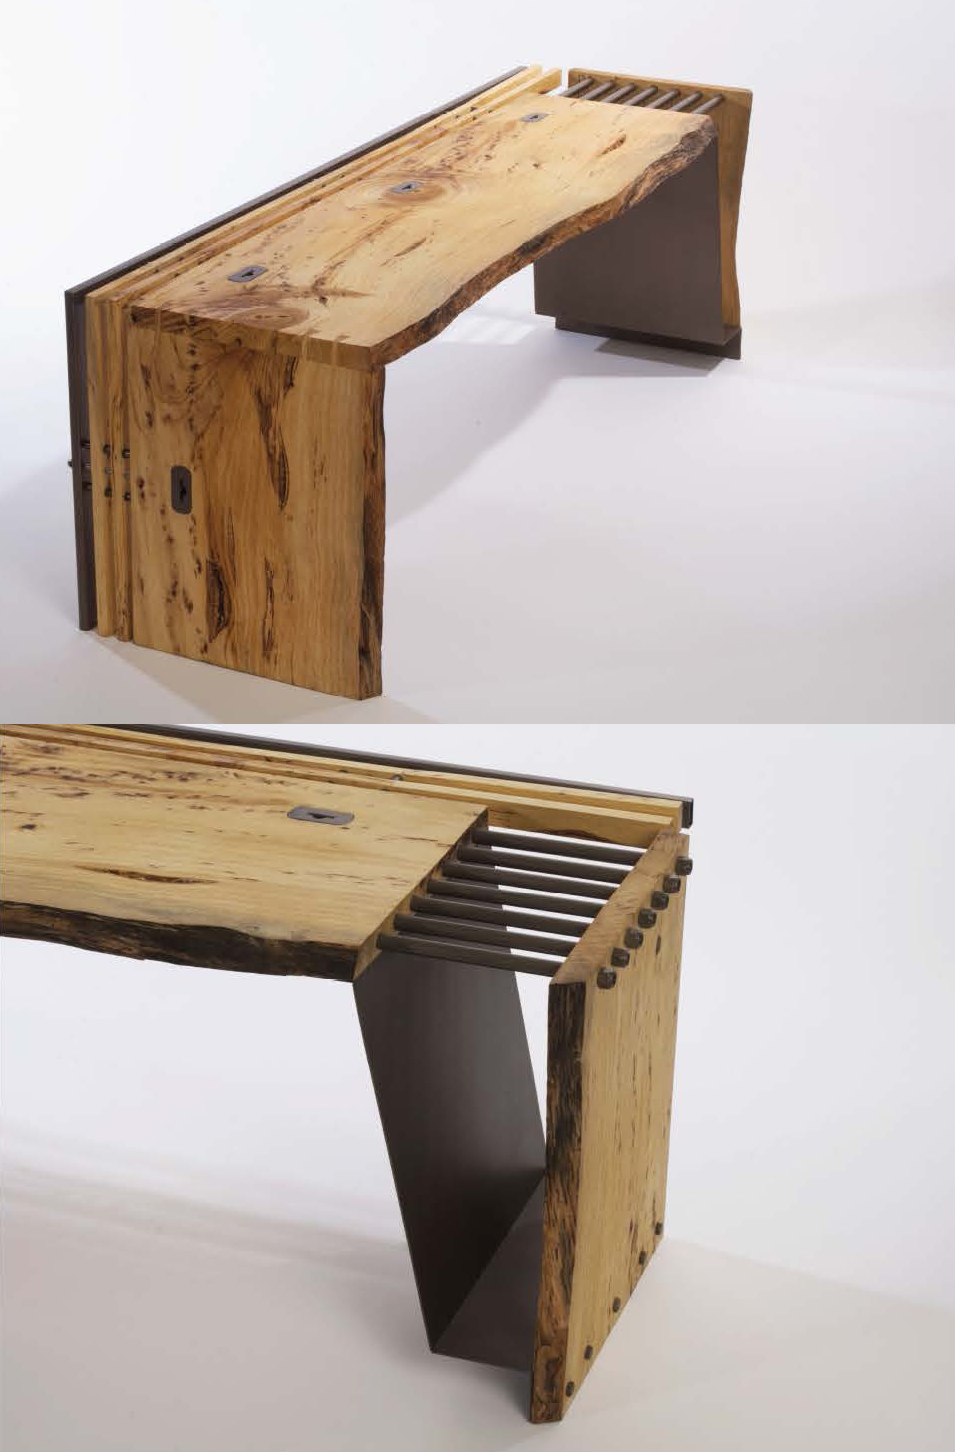 wood bench by Mineli Megerdichian